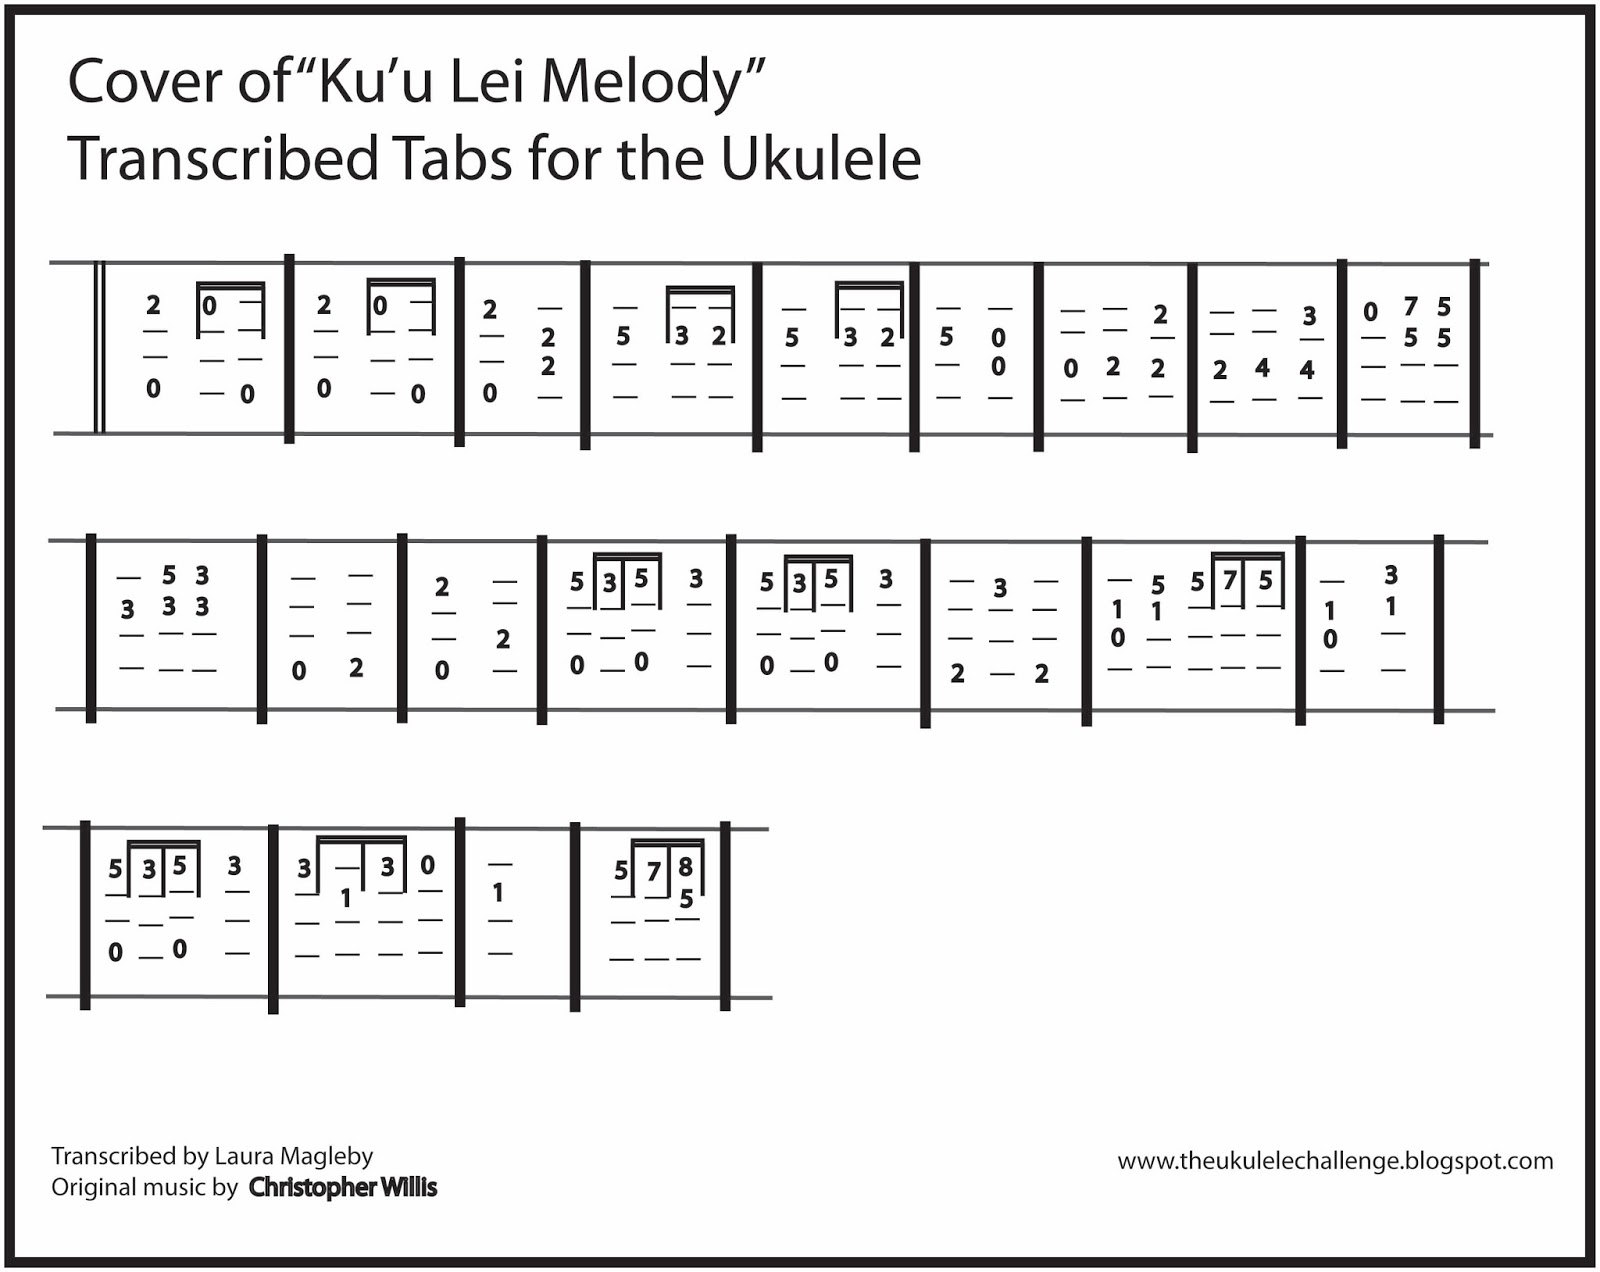 House Of Gold Ukulele Chords The Ukulele Challenge Cover Song Kuu Lei Melody For The Ukulele